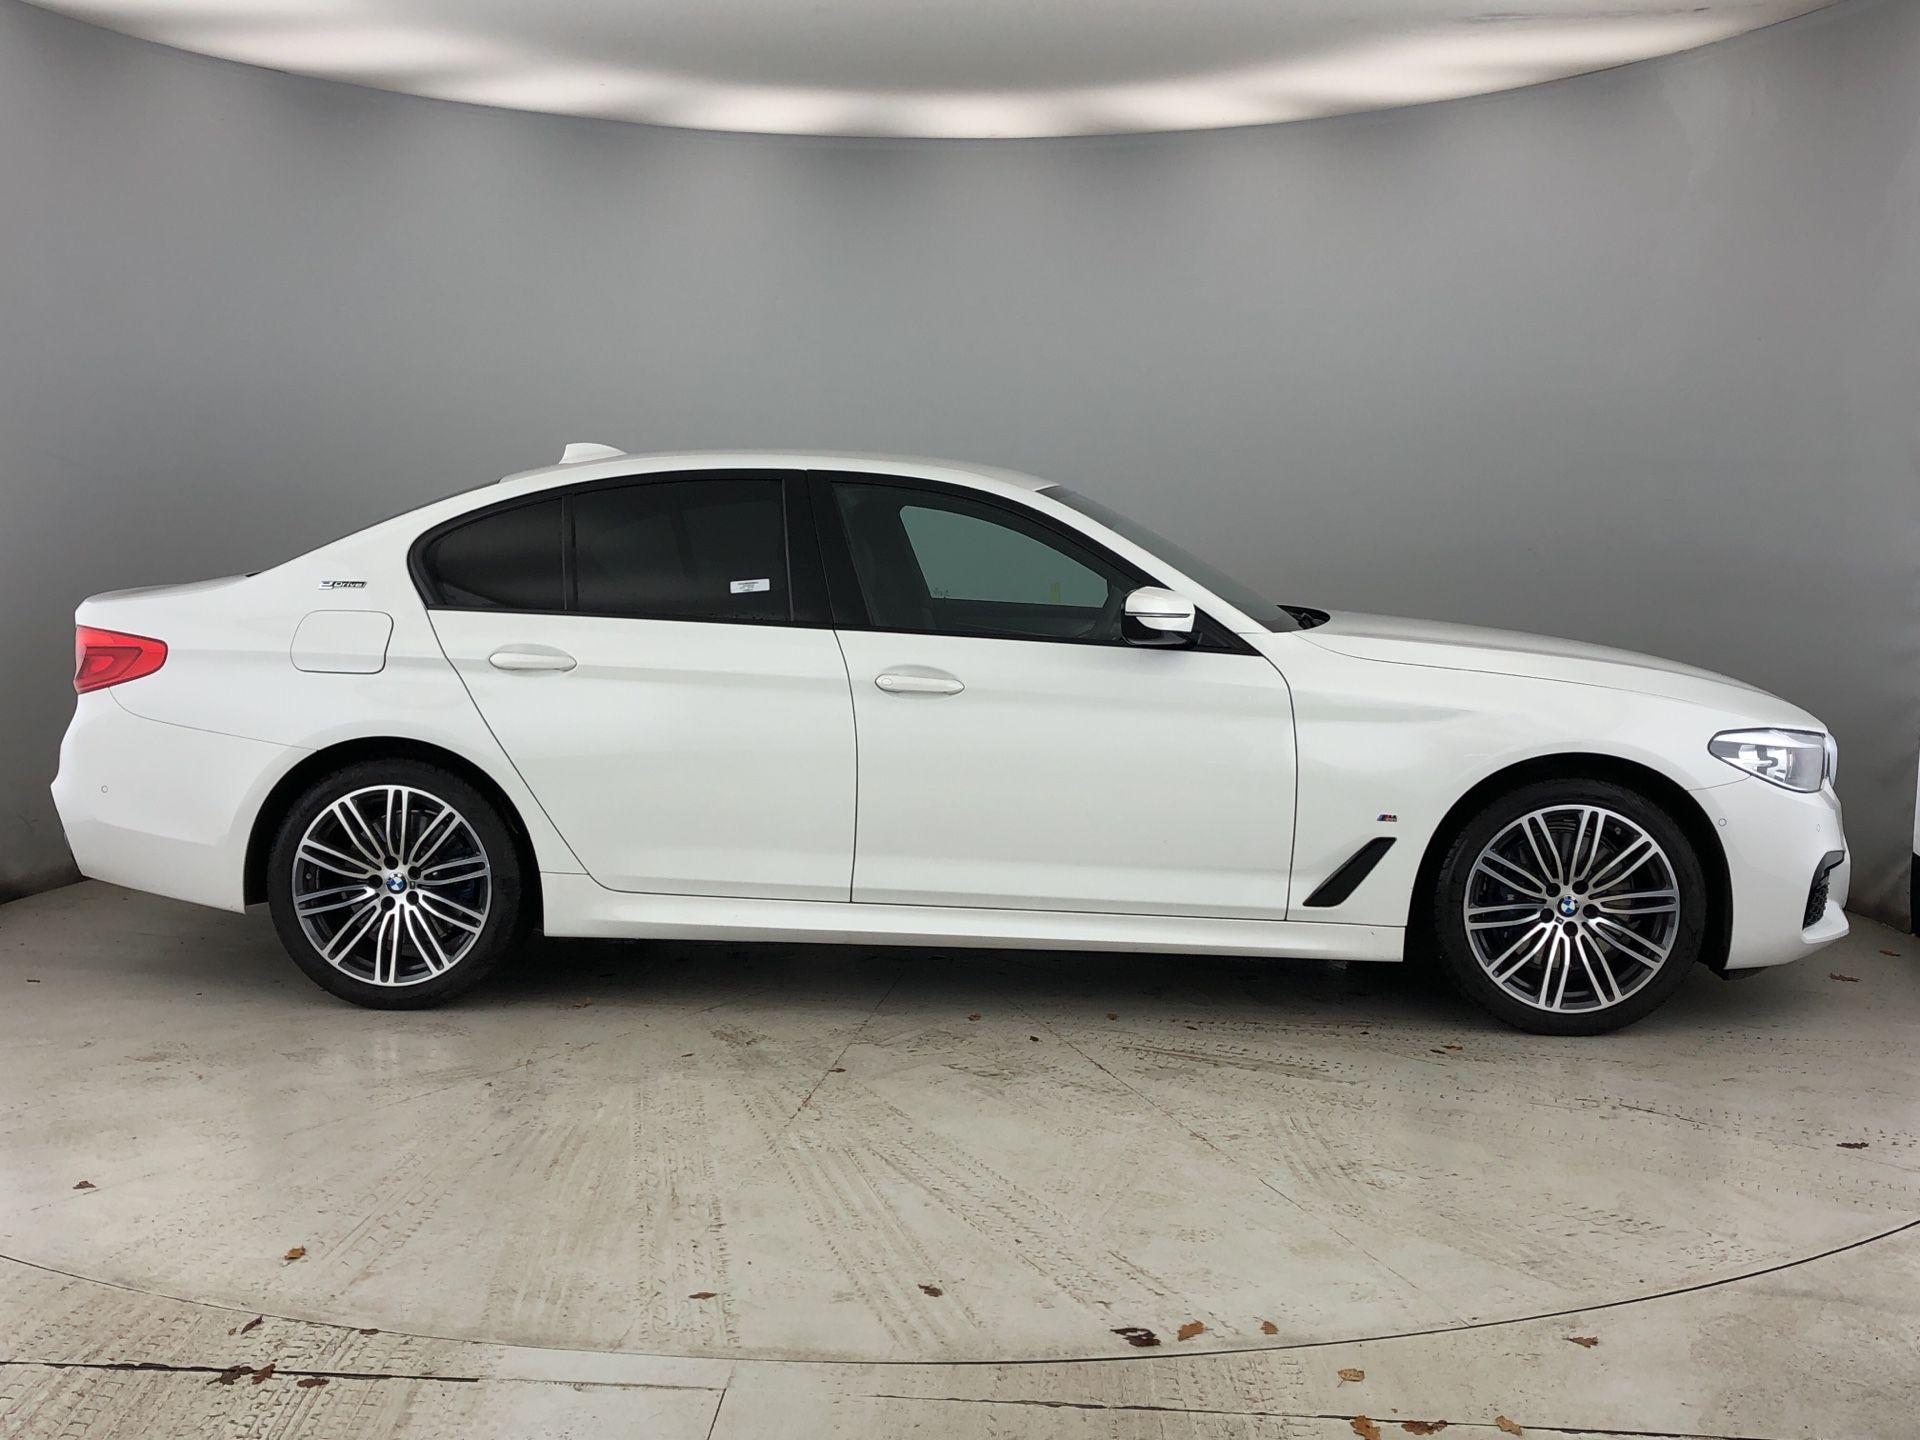 Image 3 - BMW 530e M Sport iPerformance Saloon (YH19YLG)